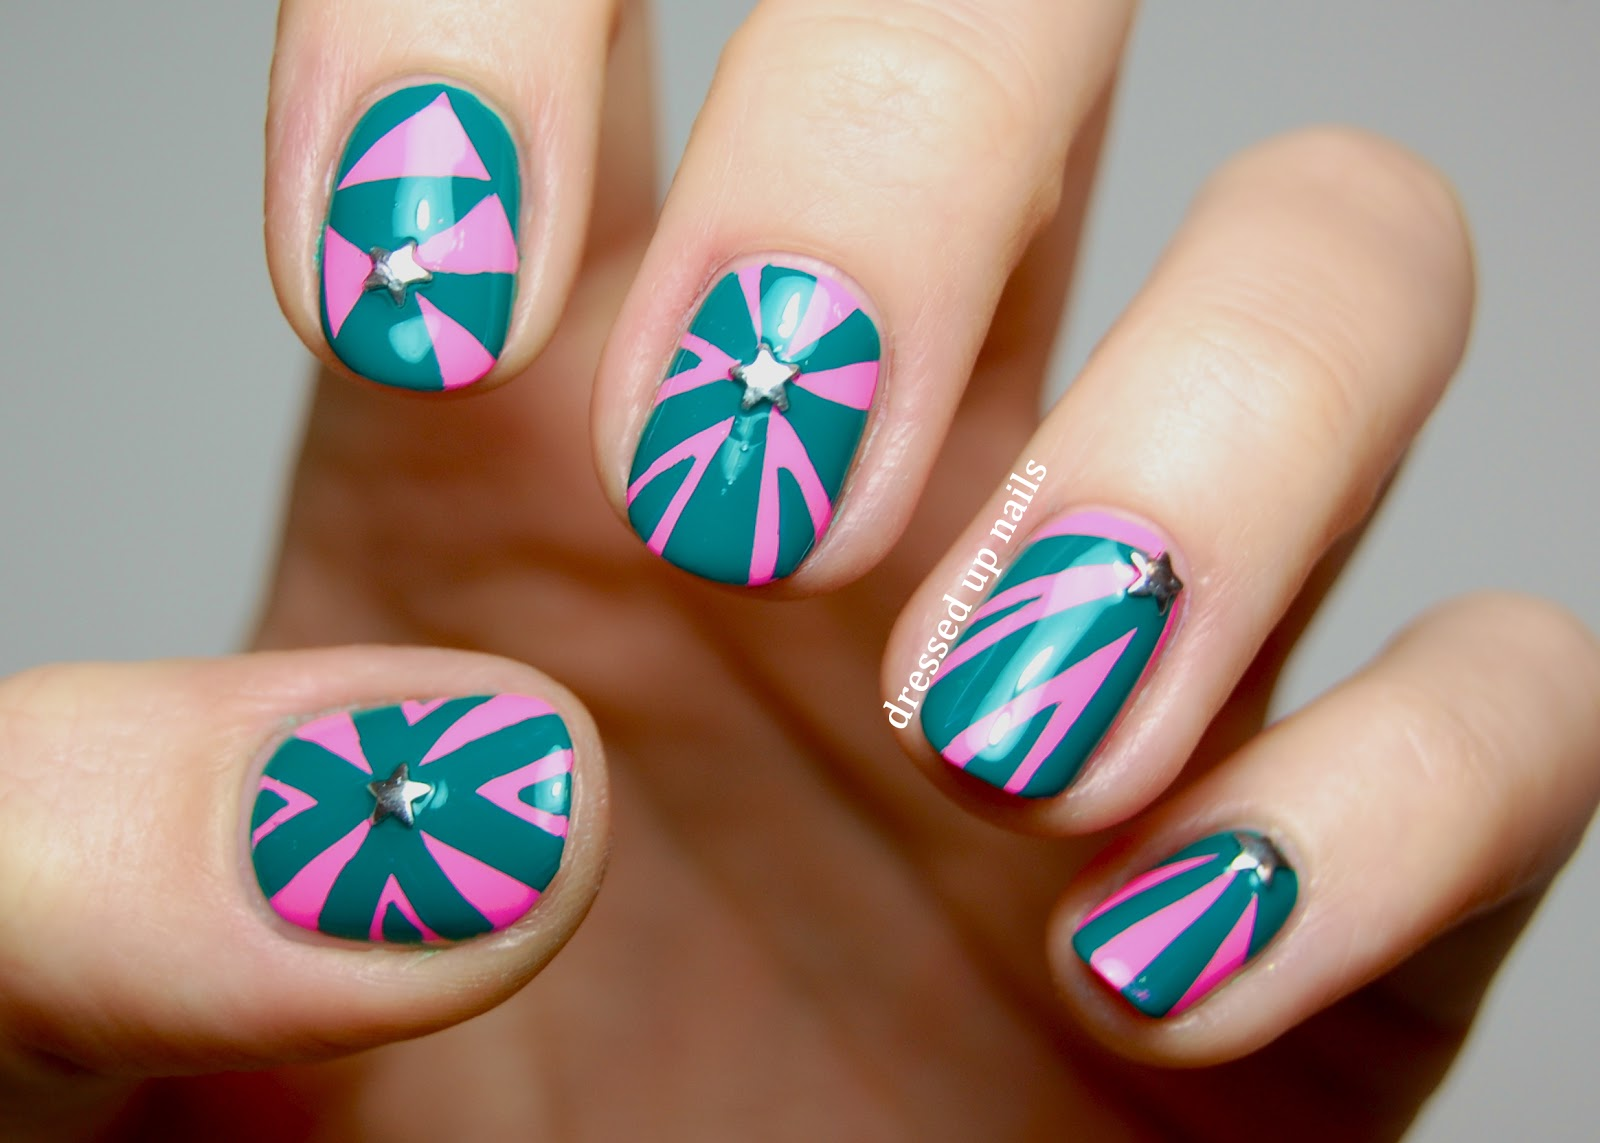 Nail Art Designs With 2 Colors - CrossfitHPU